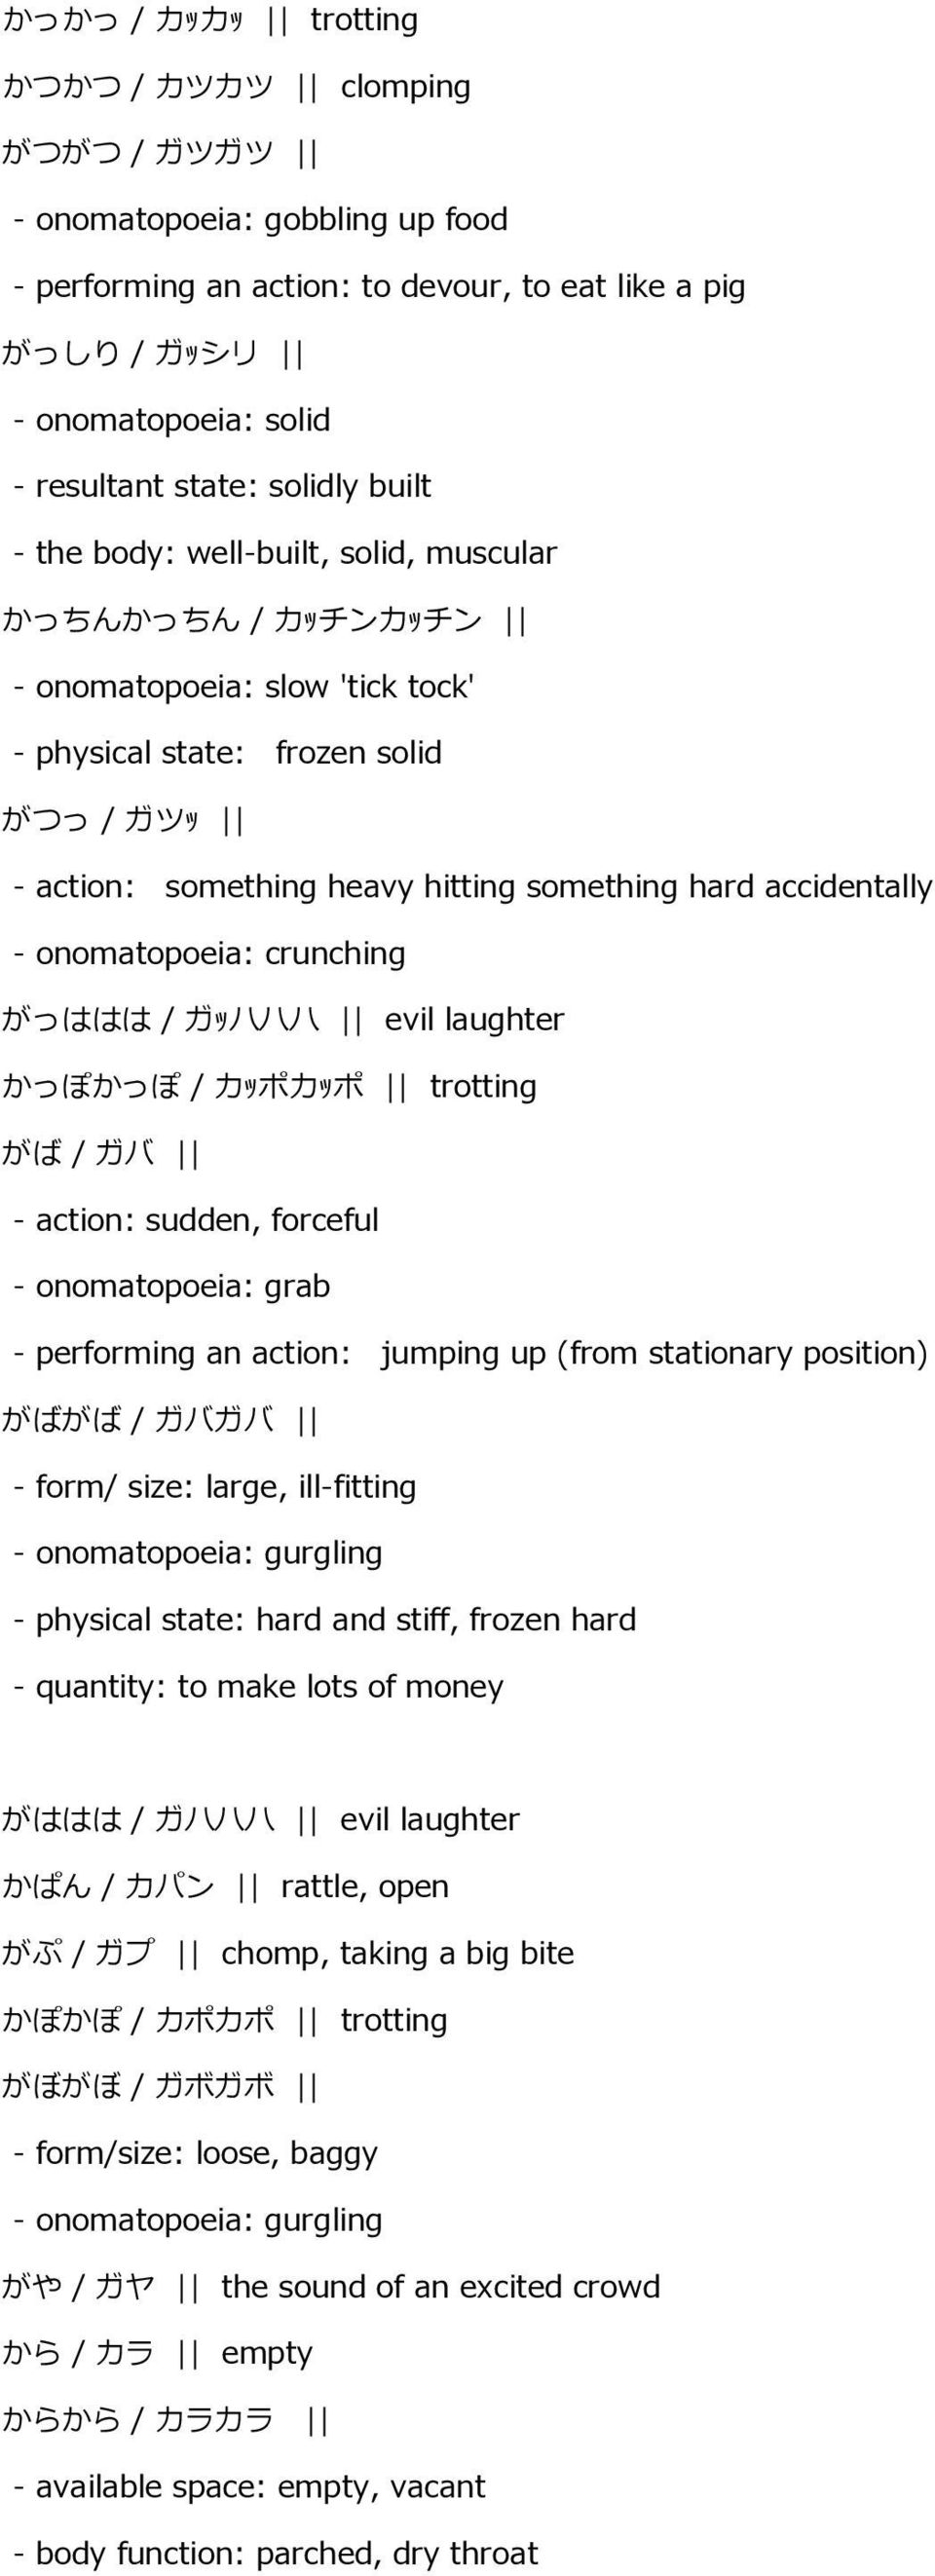 accidentally - onomatopoeia: crunching がっははは / ガッハハハ evil laughter かっぽかっぽ / カッポカッポ trotting がば / ガバ - action: sudden, forceful - onomatopoeia: grab - performing an action: jumping up (from stationary